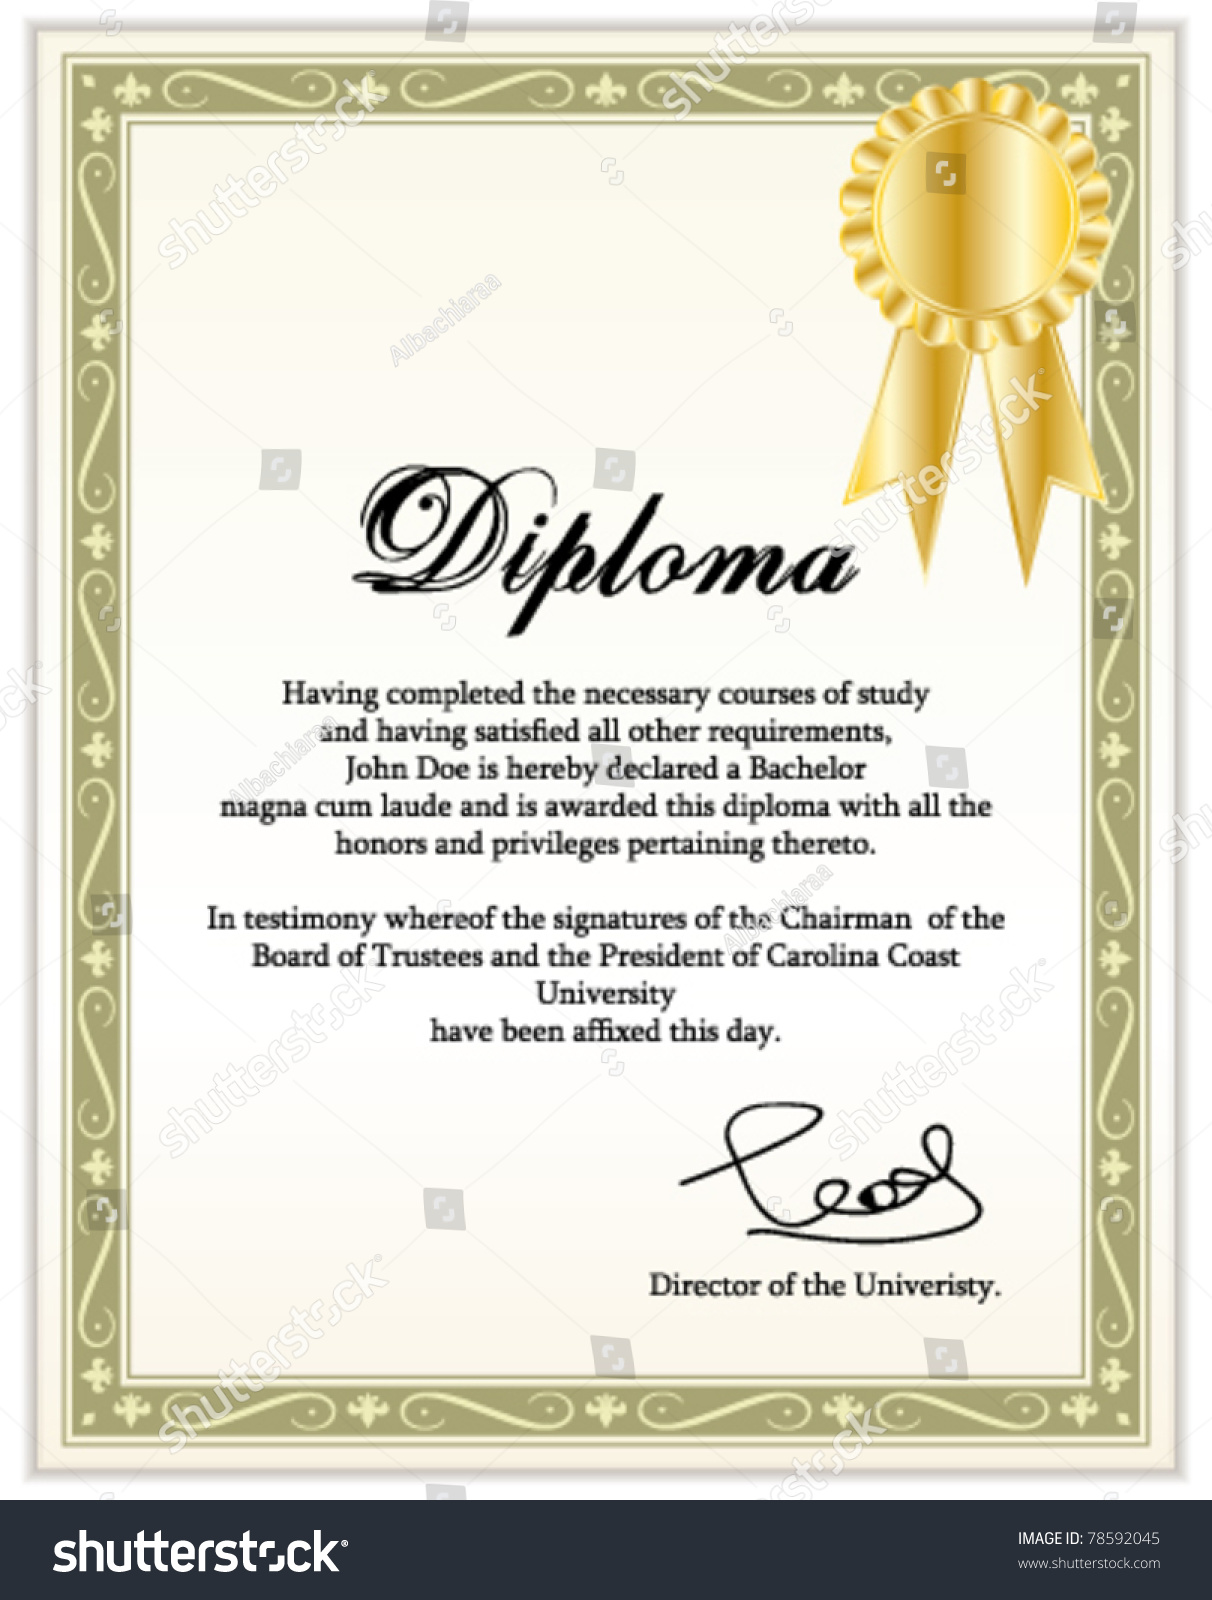 Diploma Template Free abstract diploma template free vector – Graduation Certificate Template Free